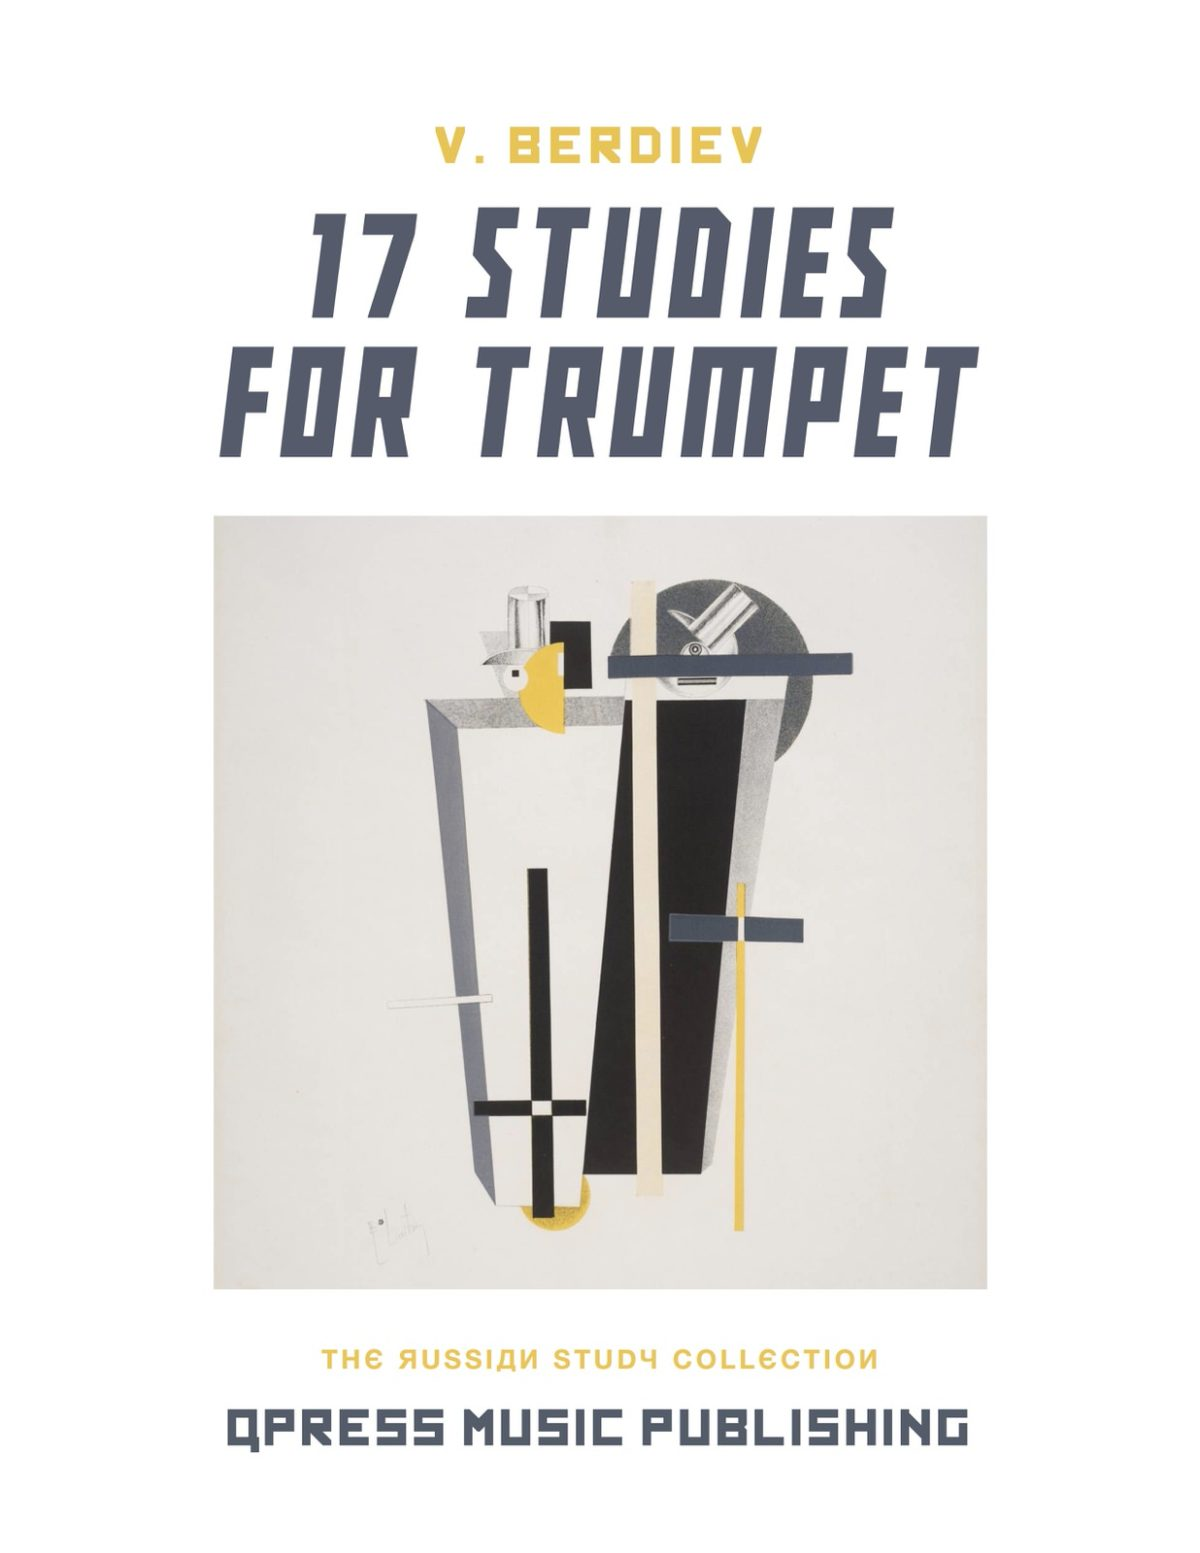 Berdiev, 17 Studies for Trumpet-p01